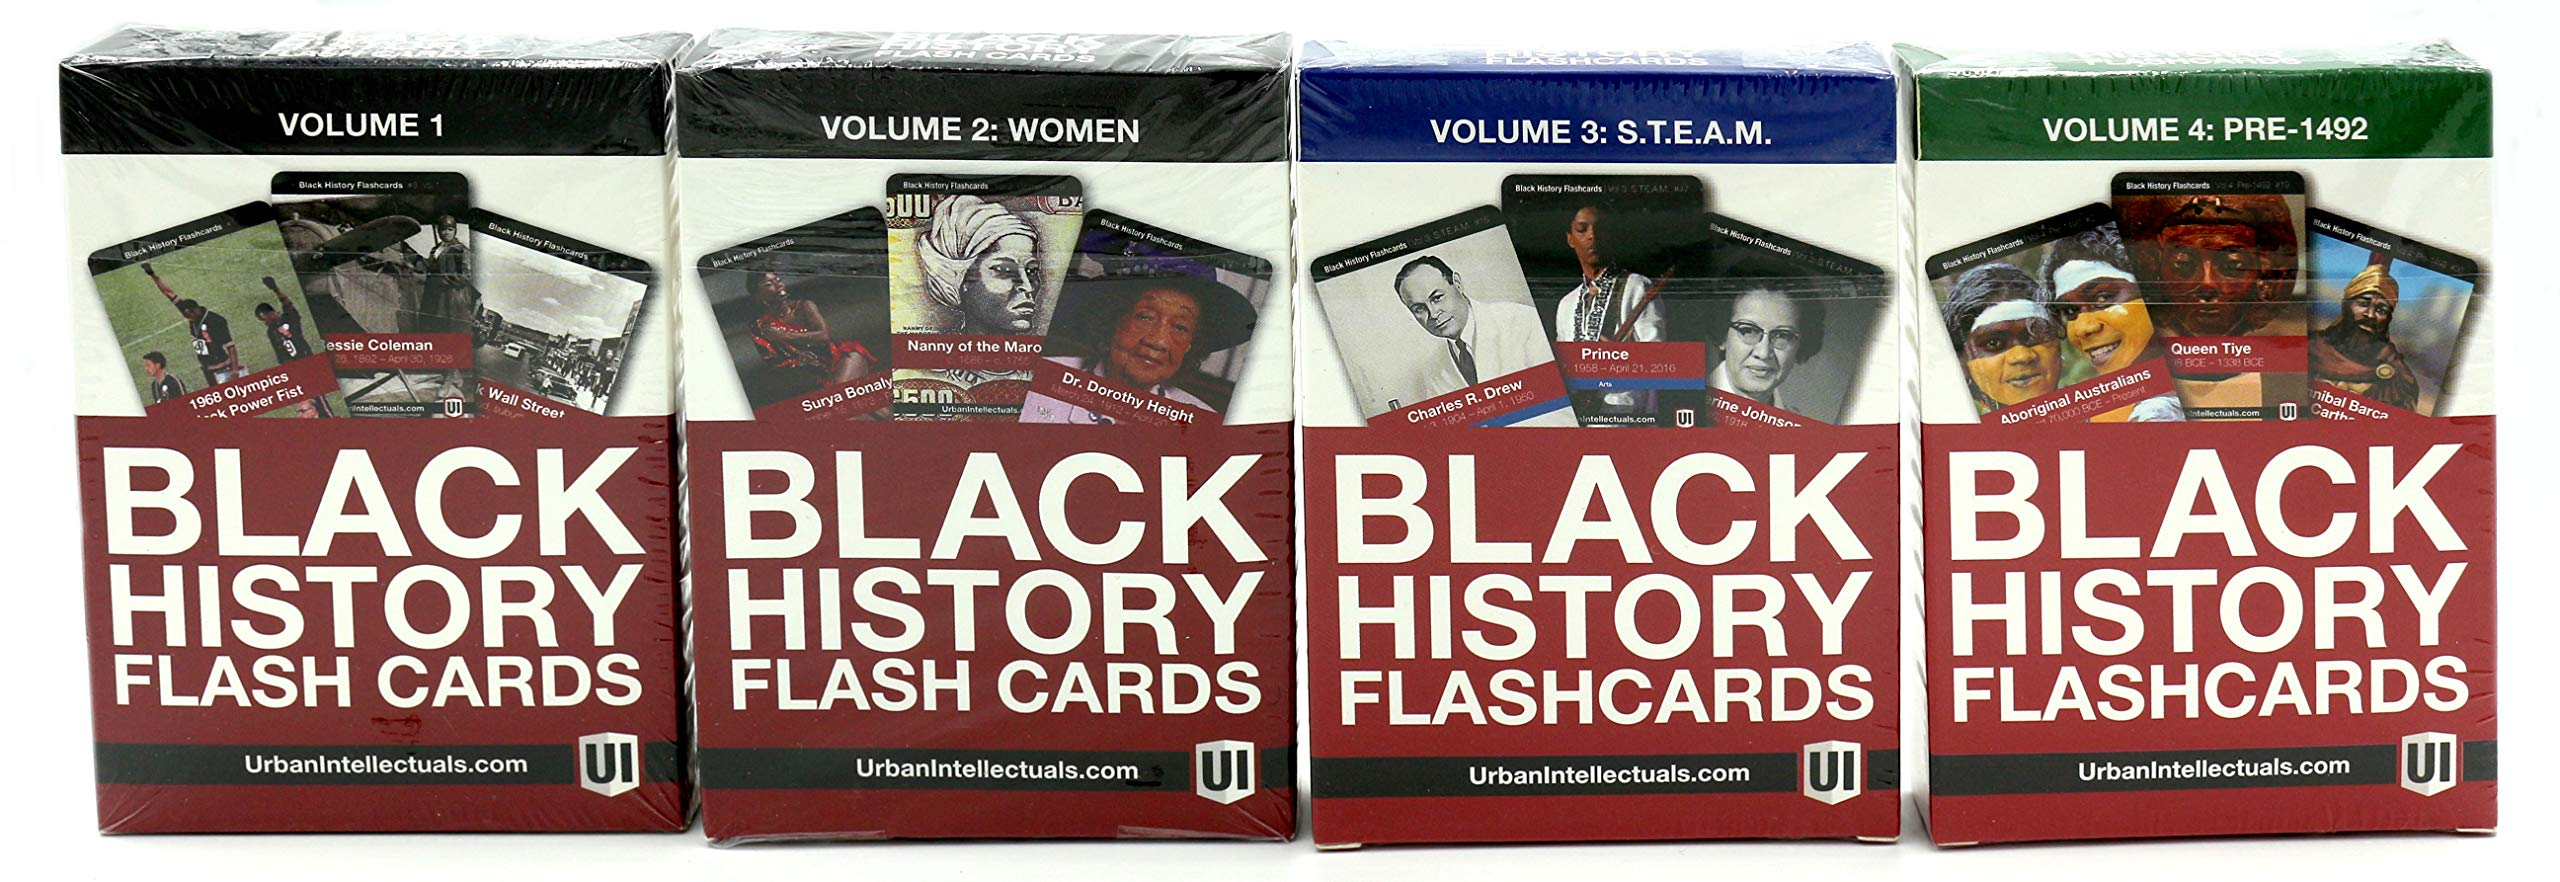 Urban Intellectuals Black History Flashcards (52 Educational Card Deck) (Combo 4 Pack)